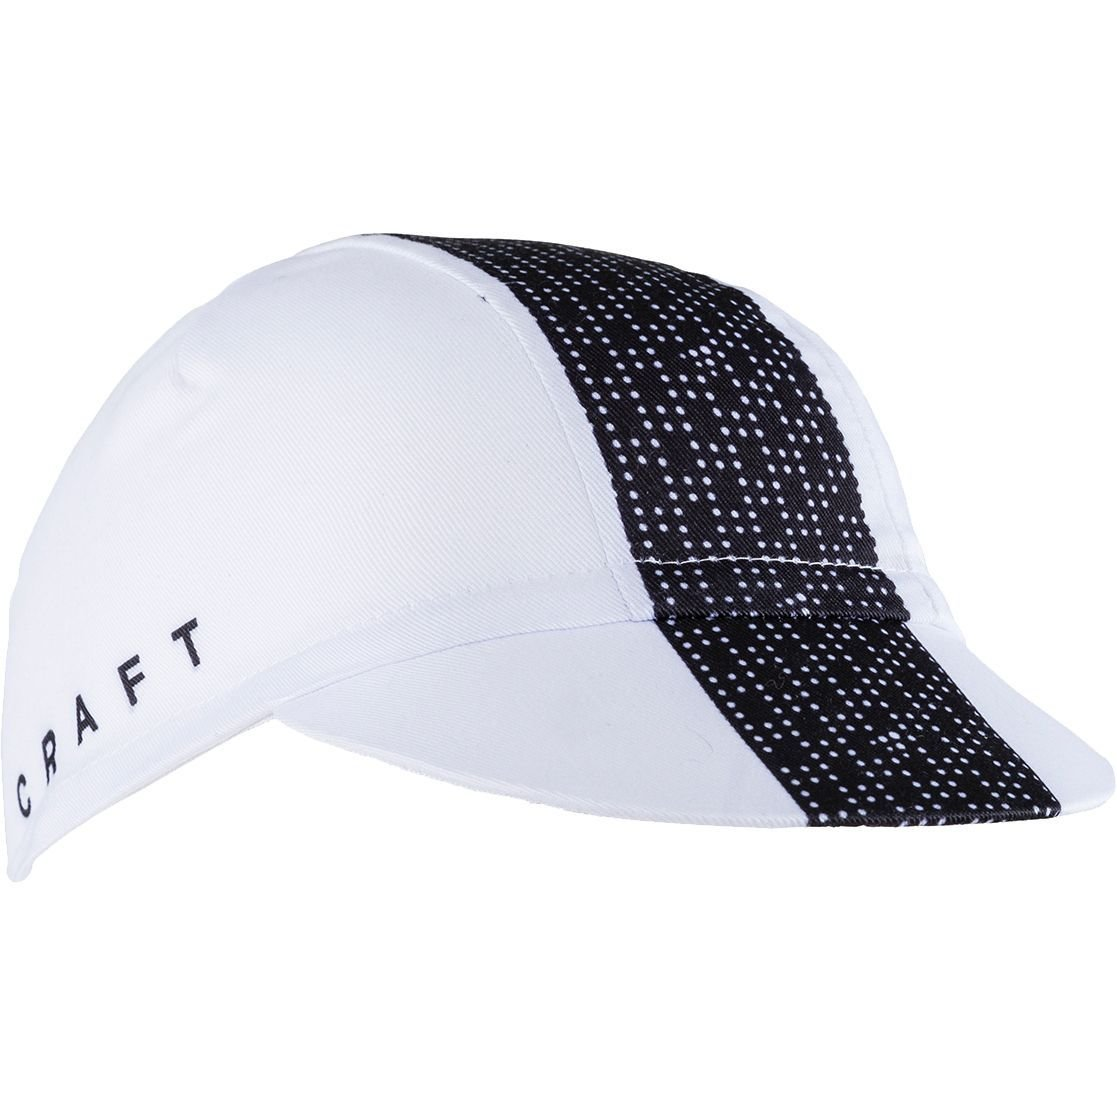 Кепка Craft Fondo Bike white/black